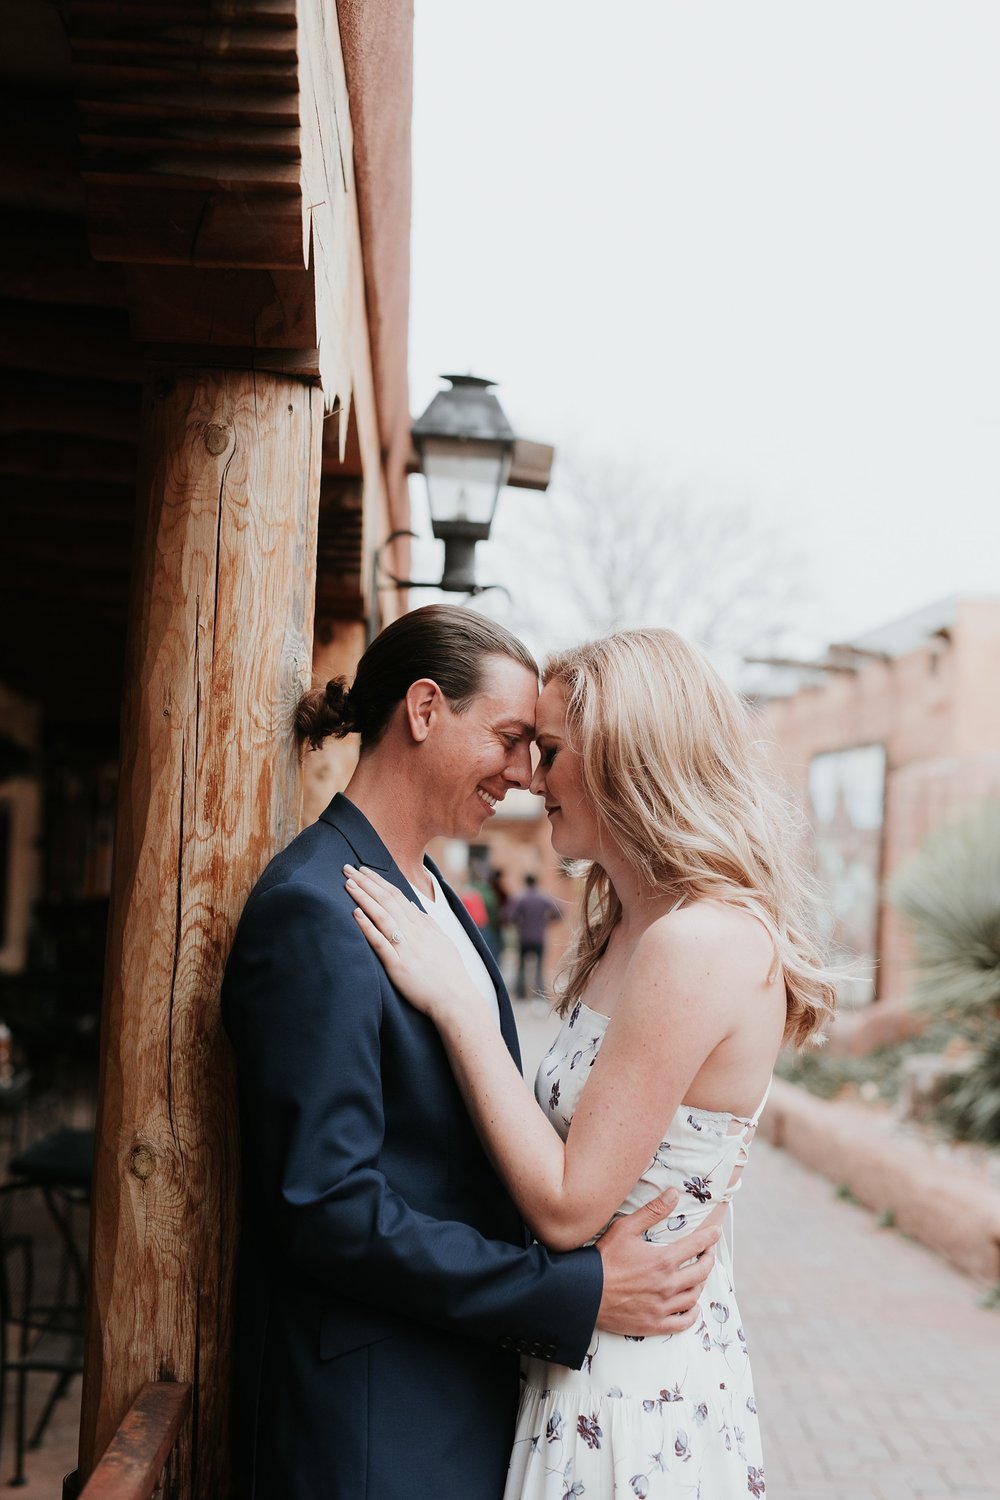 Alicia+lucia+photography+-+albuquerque+wedding+photographer+-+santa+fe+wedding+photography+-+new+mexico+wedding+photographer+-+new+mexico+engagement+-+old+town+albuquerque+engagement_0007.jpg